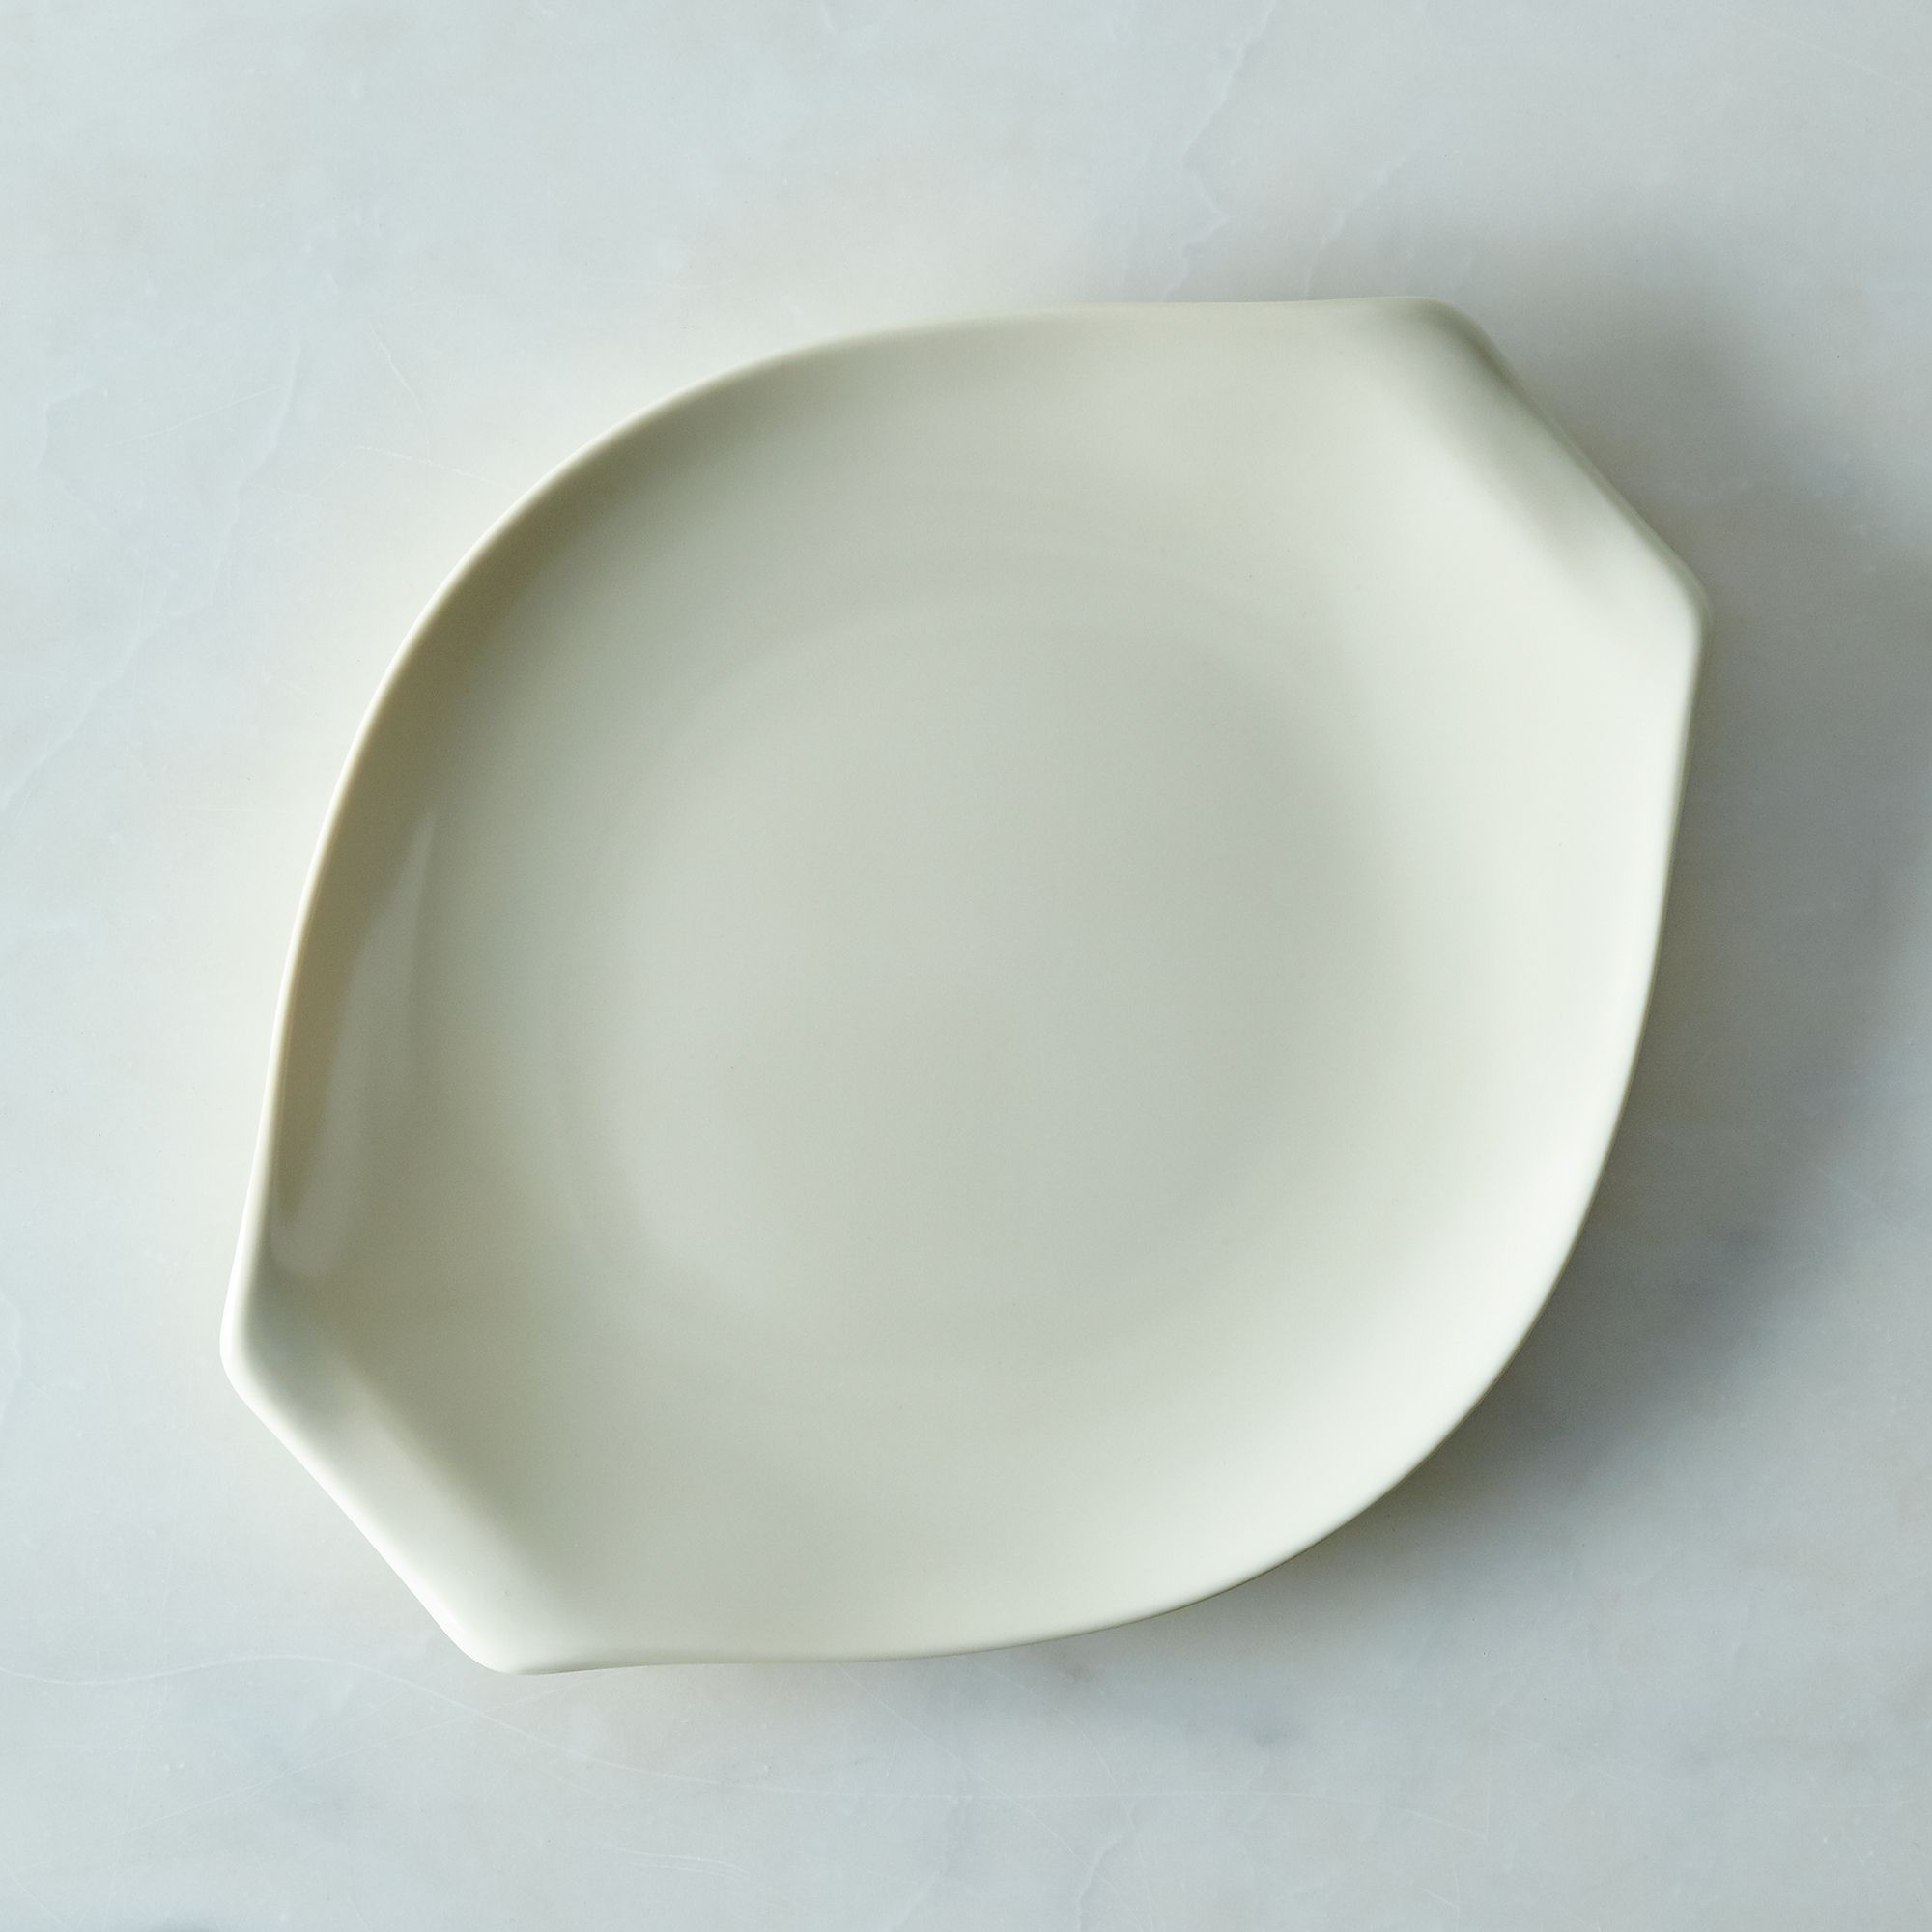 Russel Wright Melamine Dinnerware & Serveware Bone, Large Serving Platter